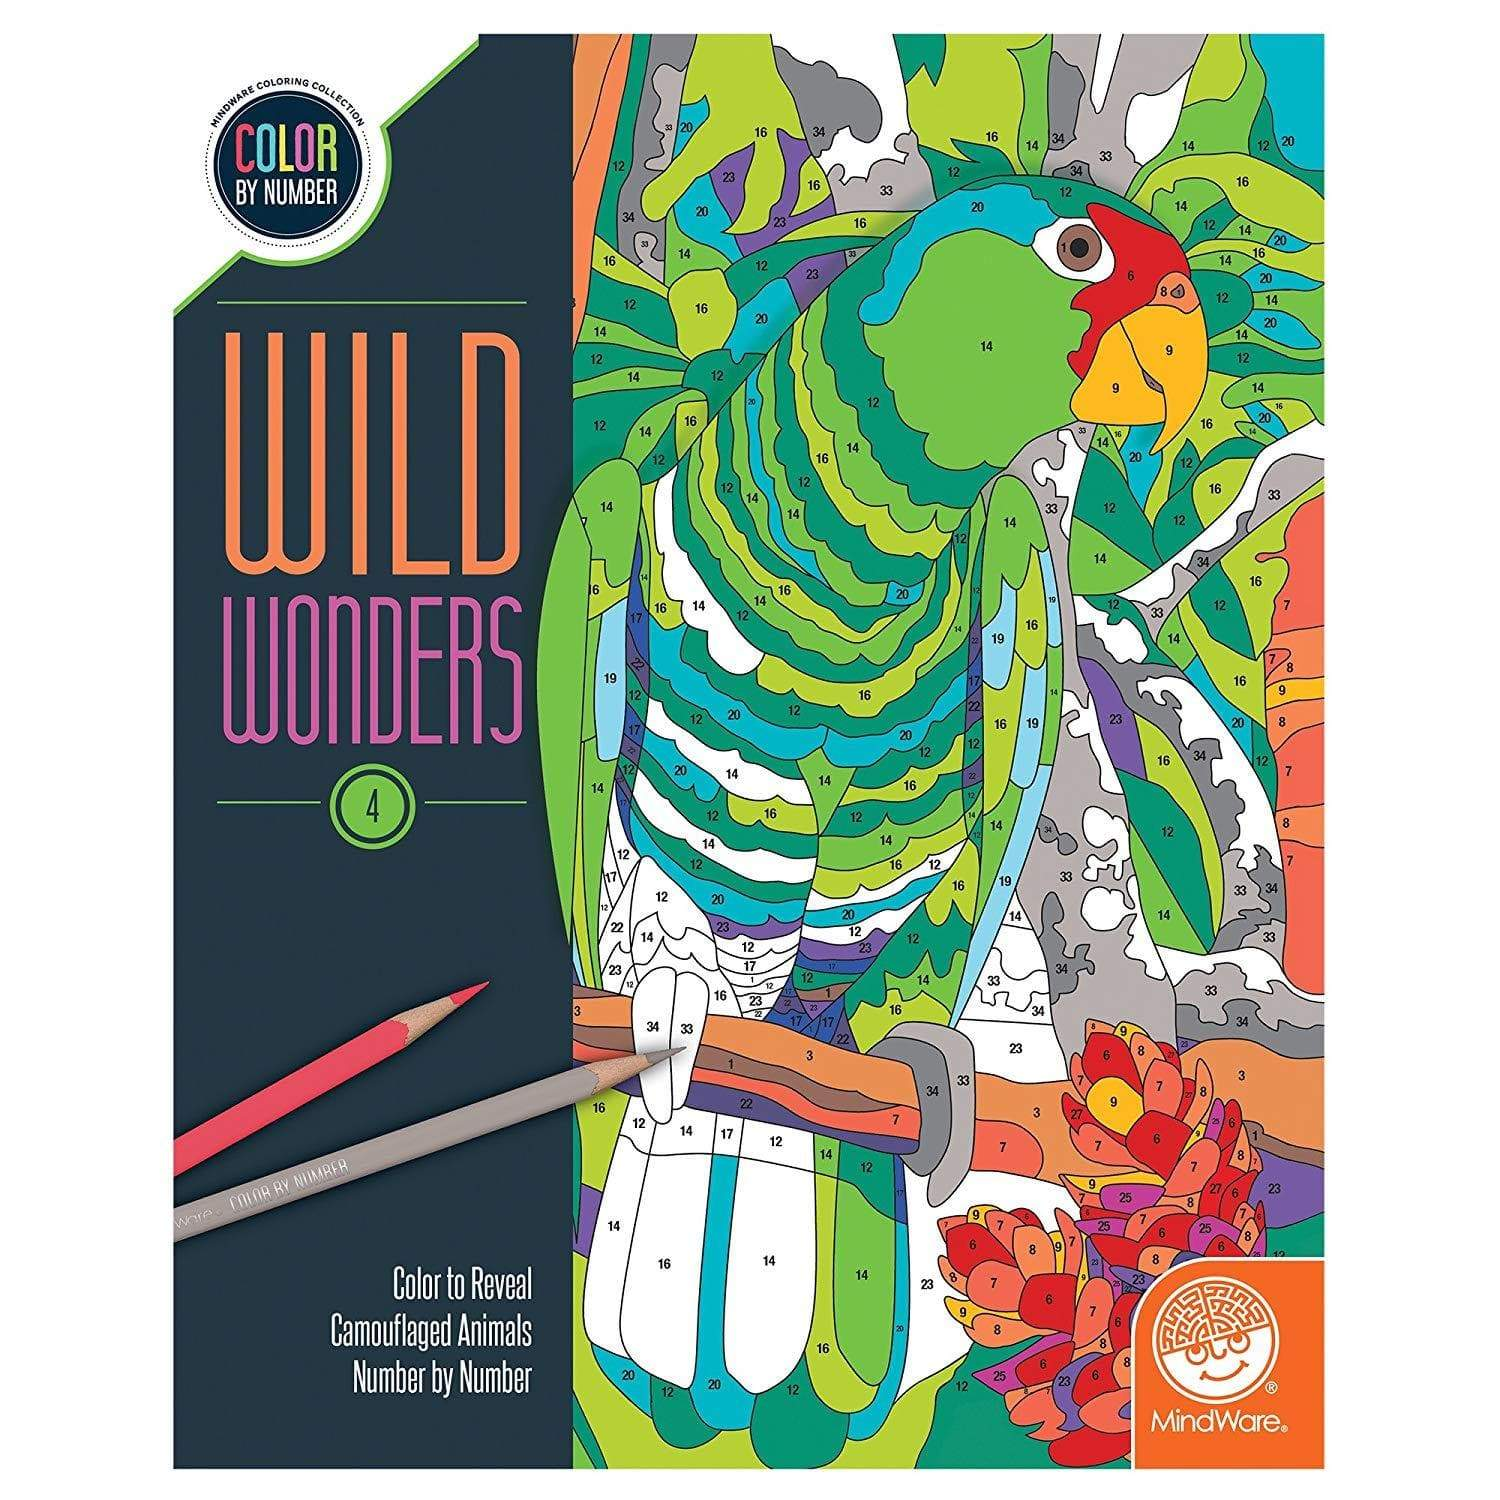 Wild Wonders: Book 4 color by number Mindware Art Supplies